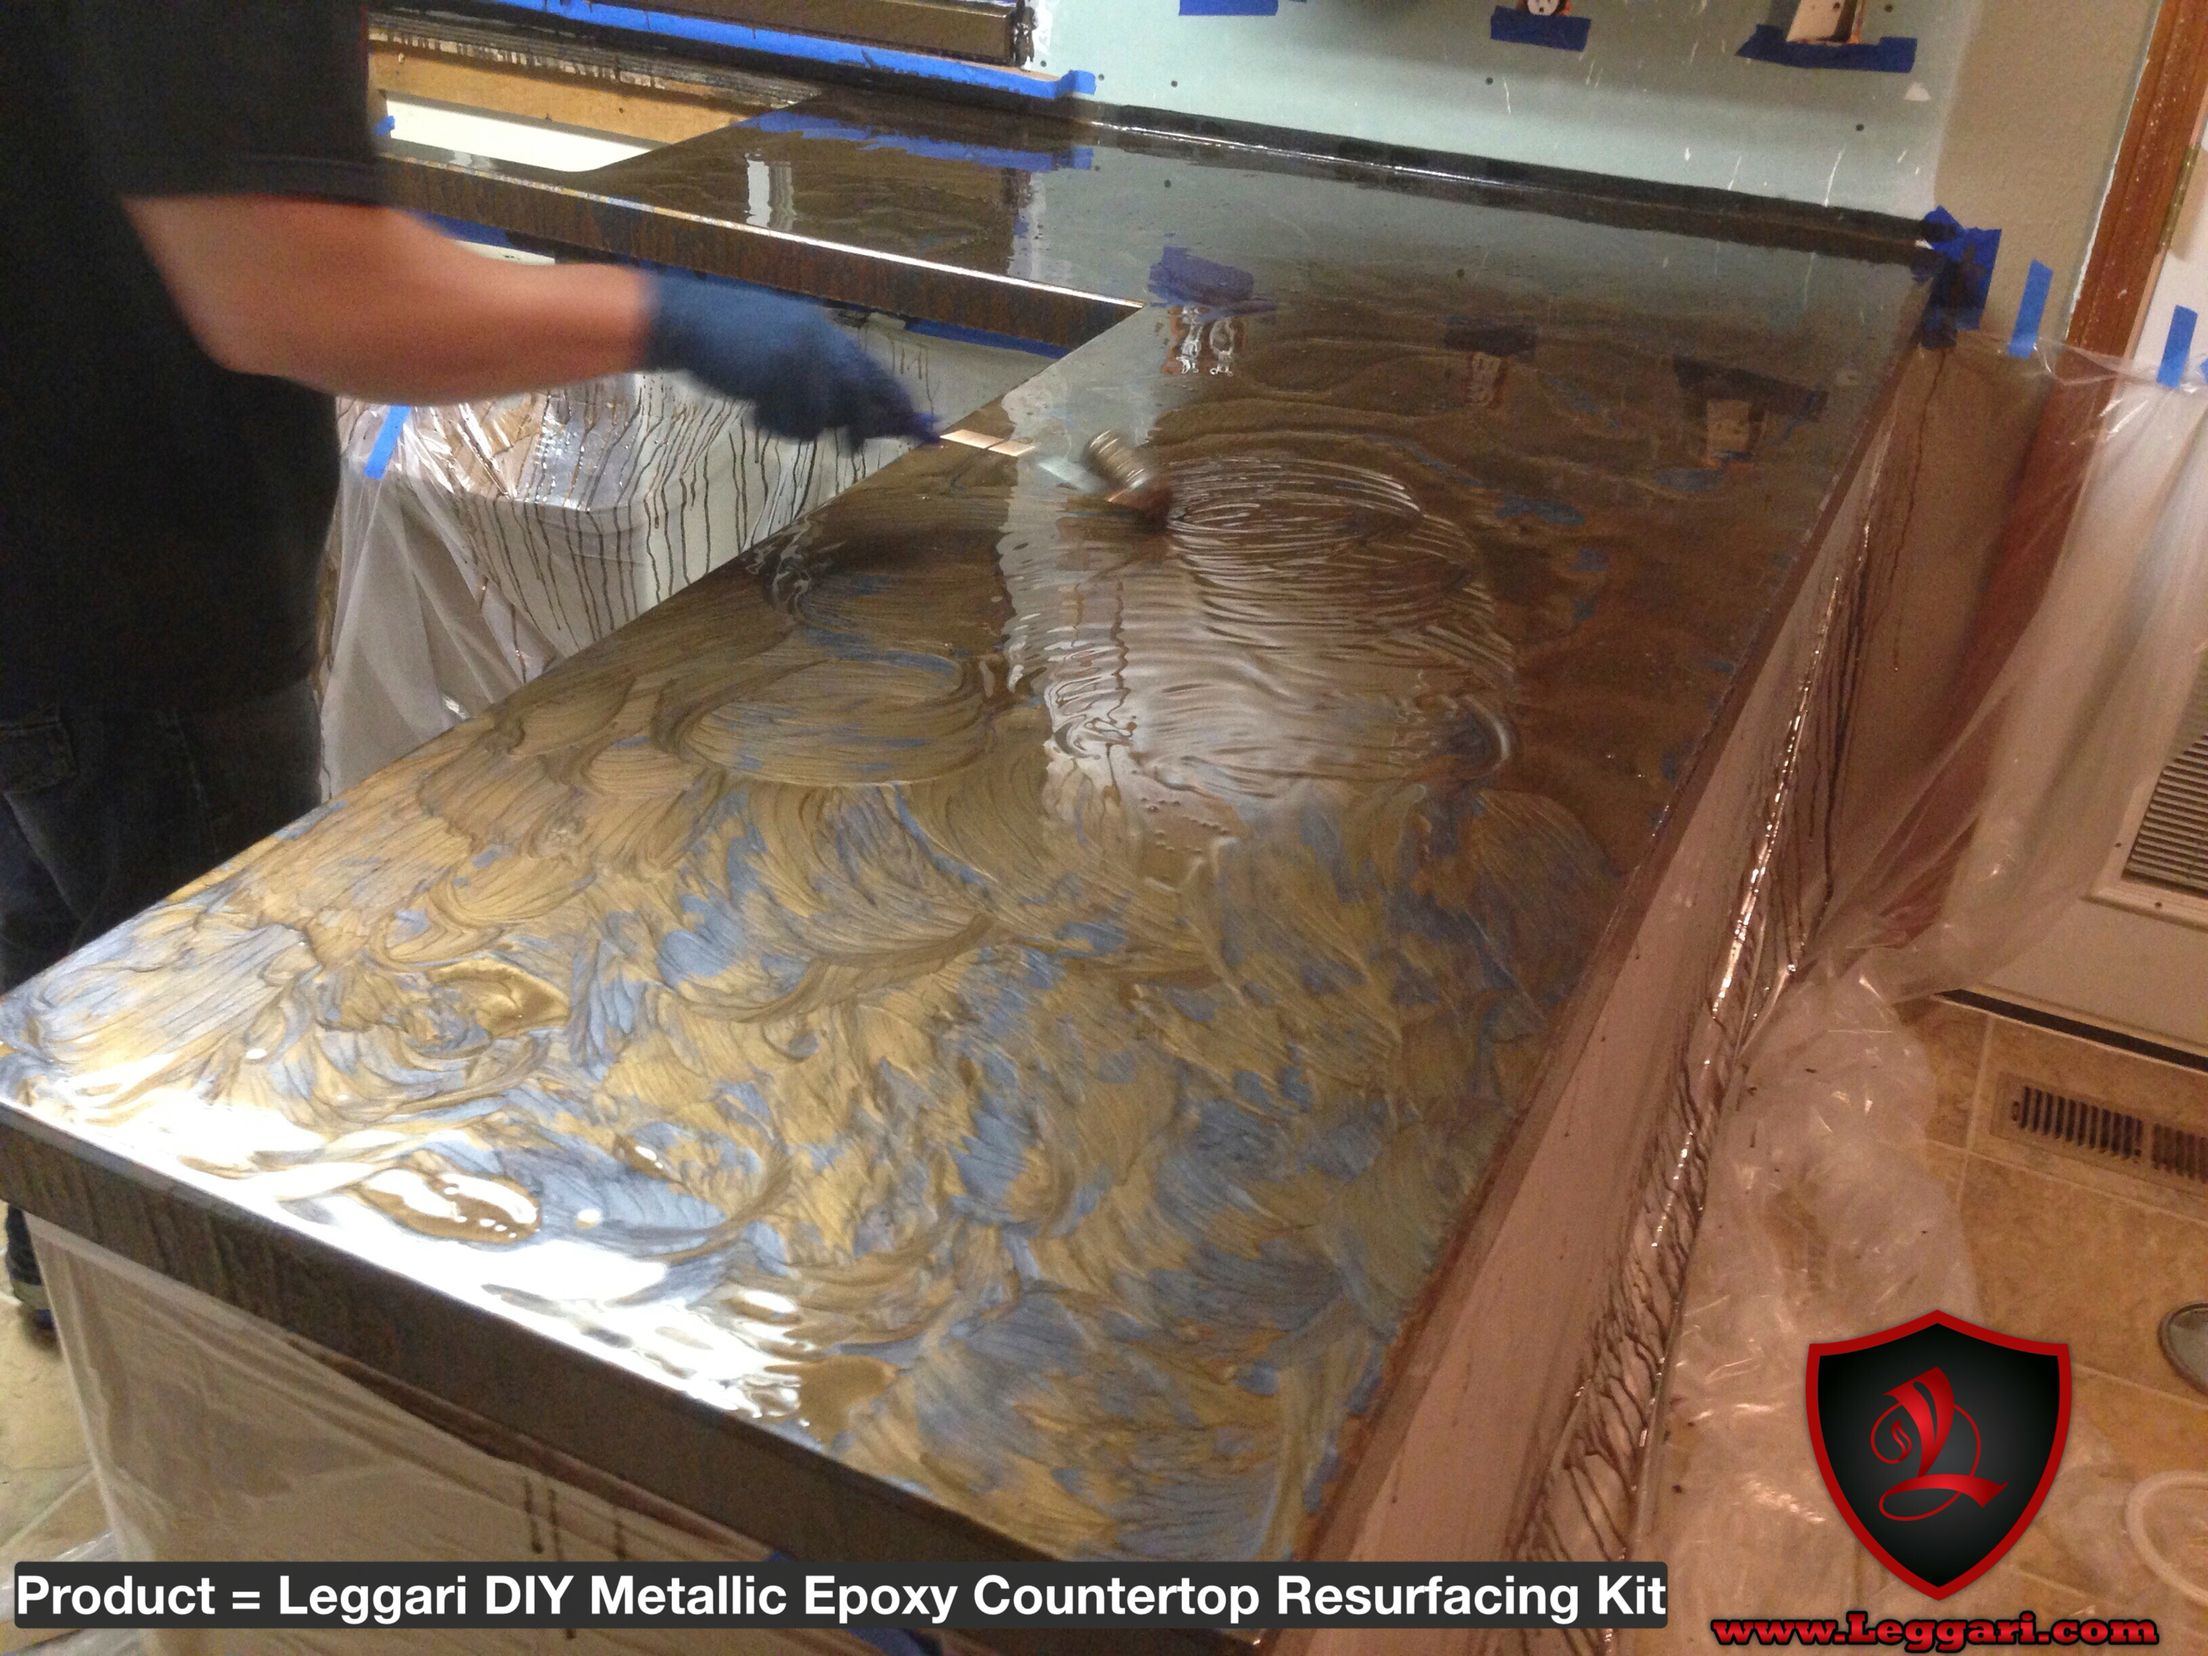 #diy #metallic #epoxy #countertop #resurfacing #kits Are #easy To